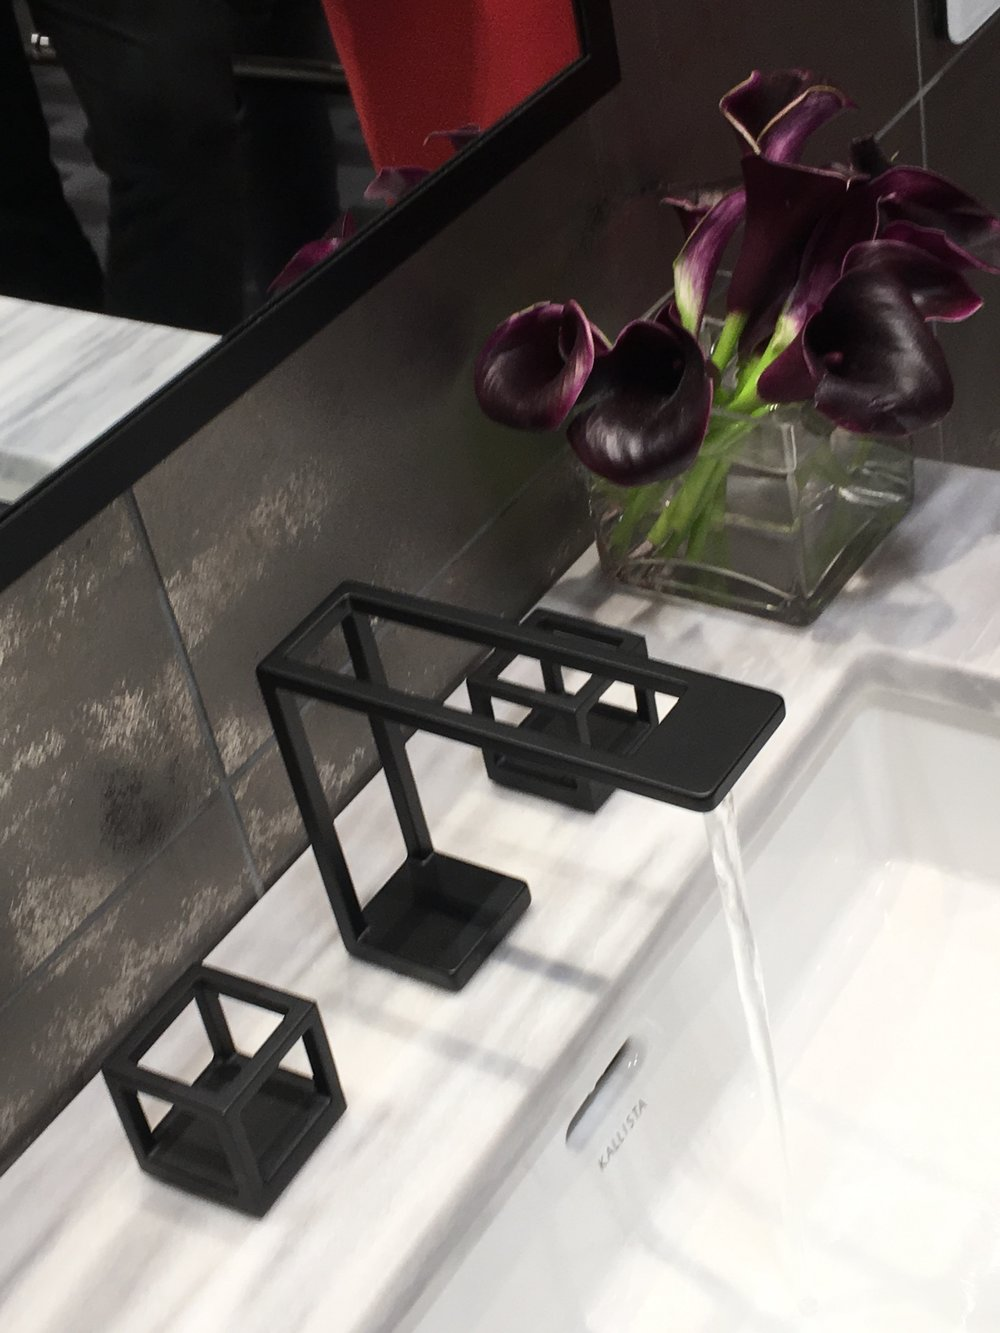 Best New Kitchen & Bath Product Awards | KBIS 2018 – Loretta J ...